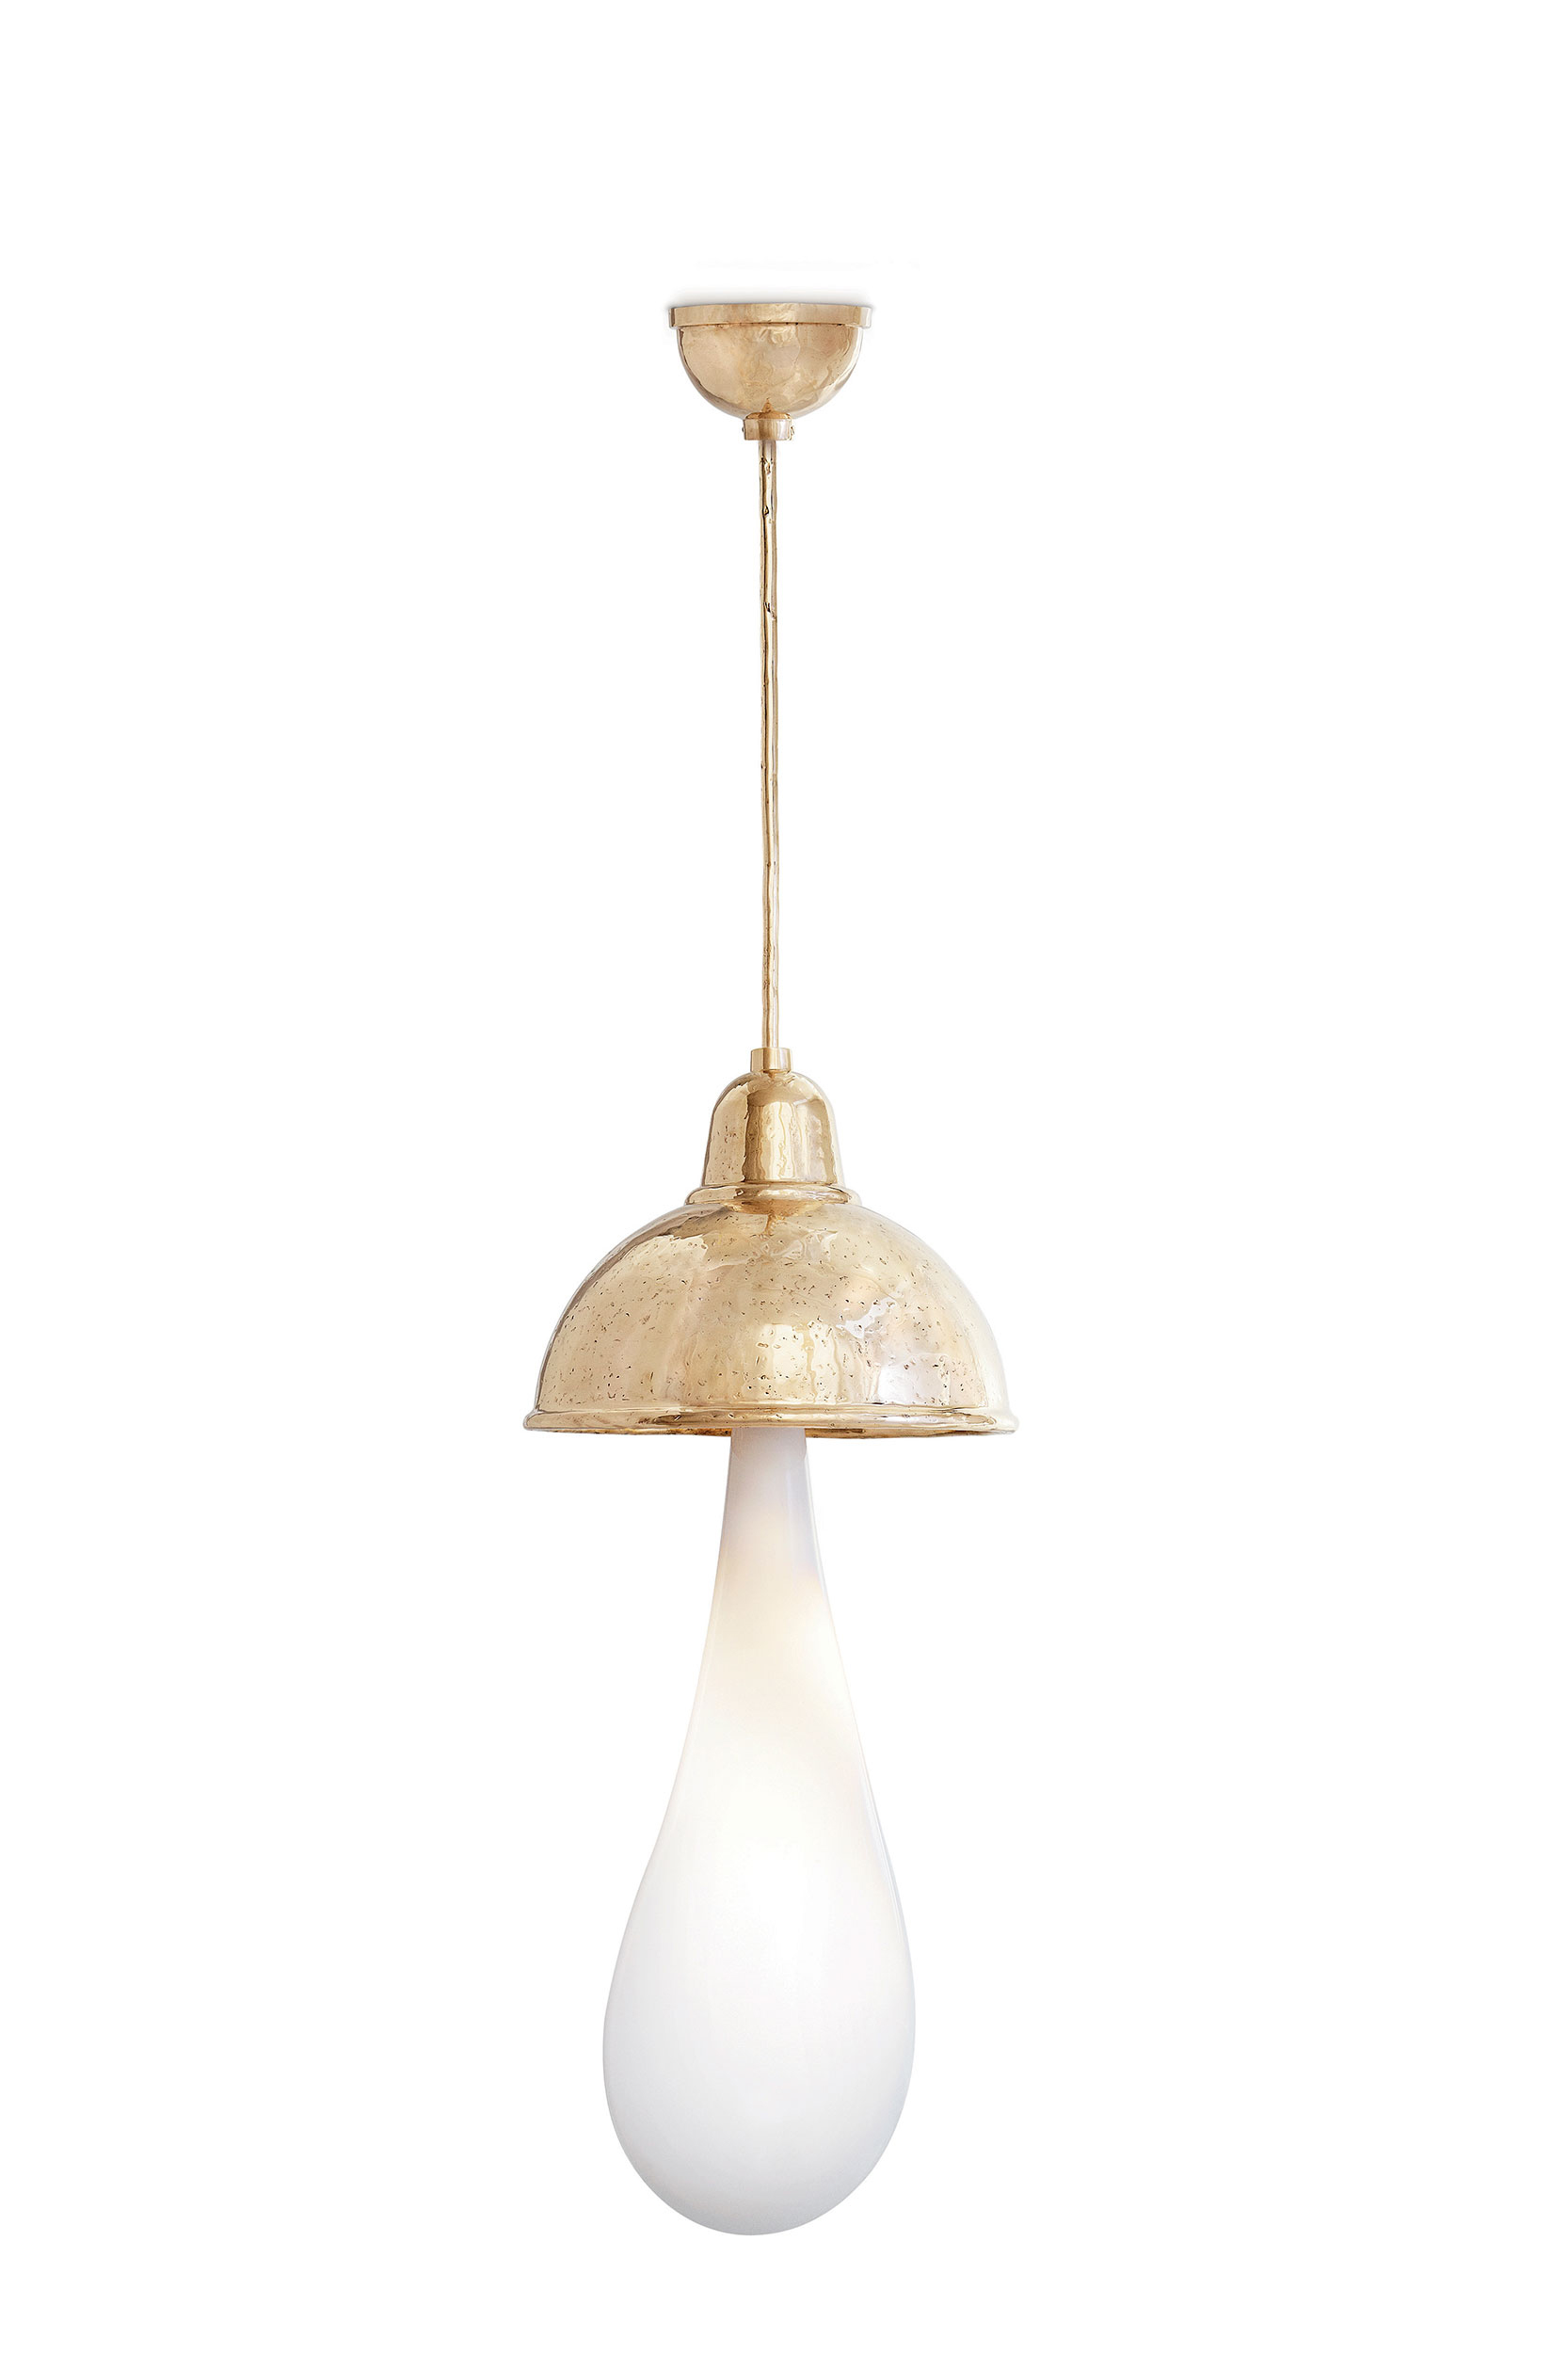 Studio Job Wonderlamp Hanging Lamp